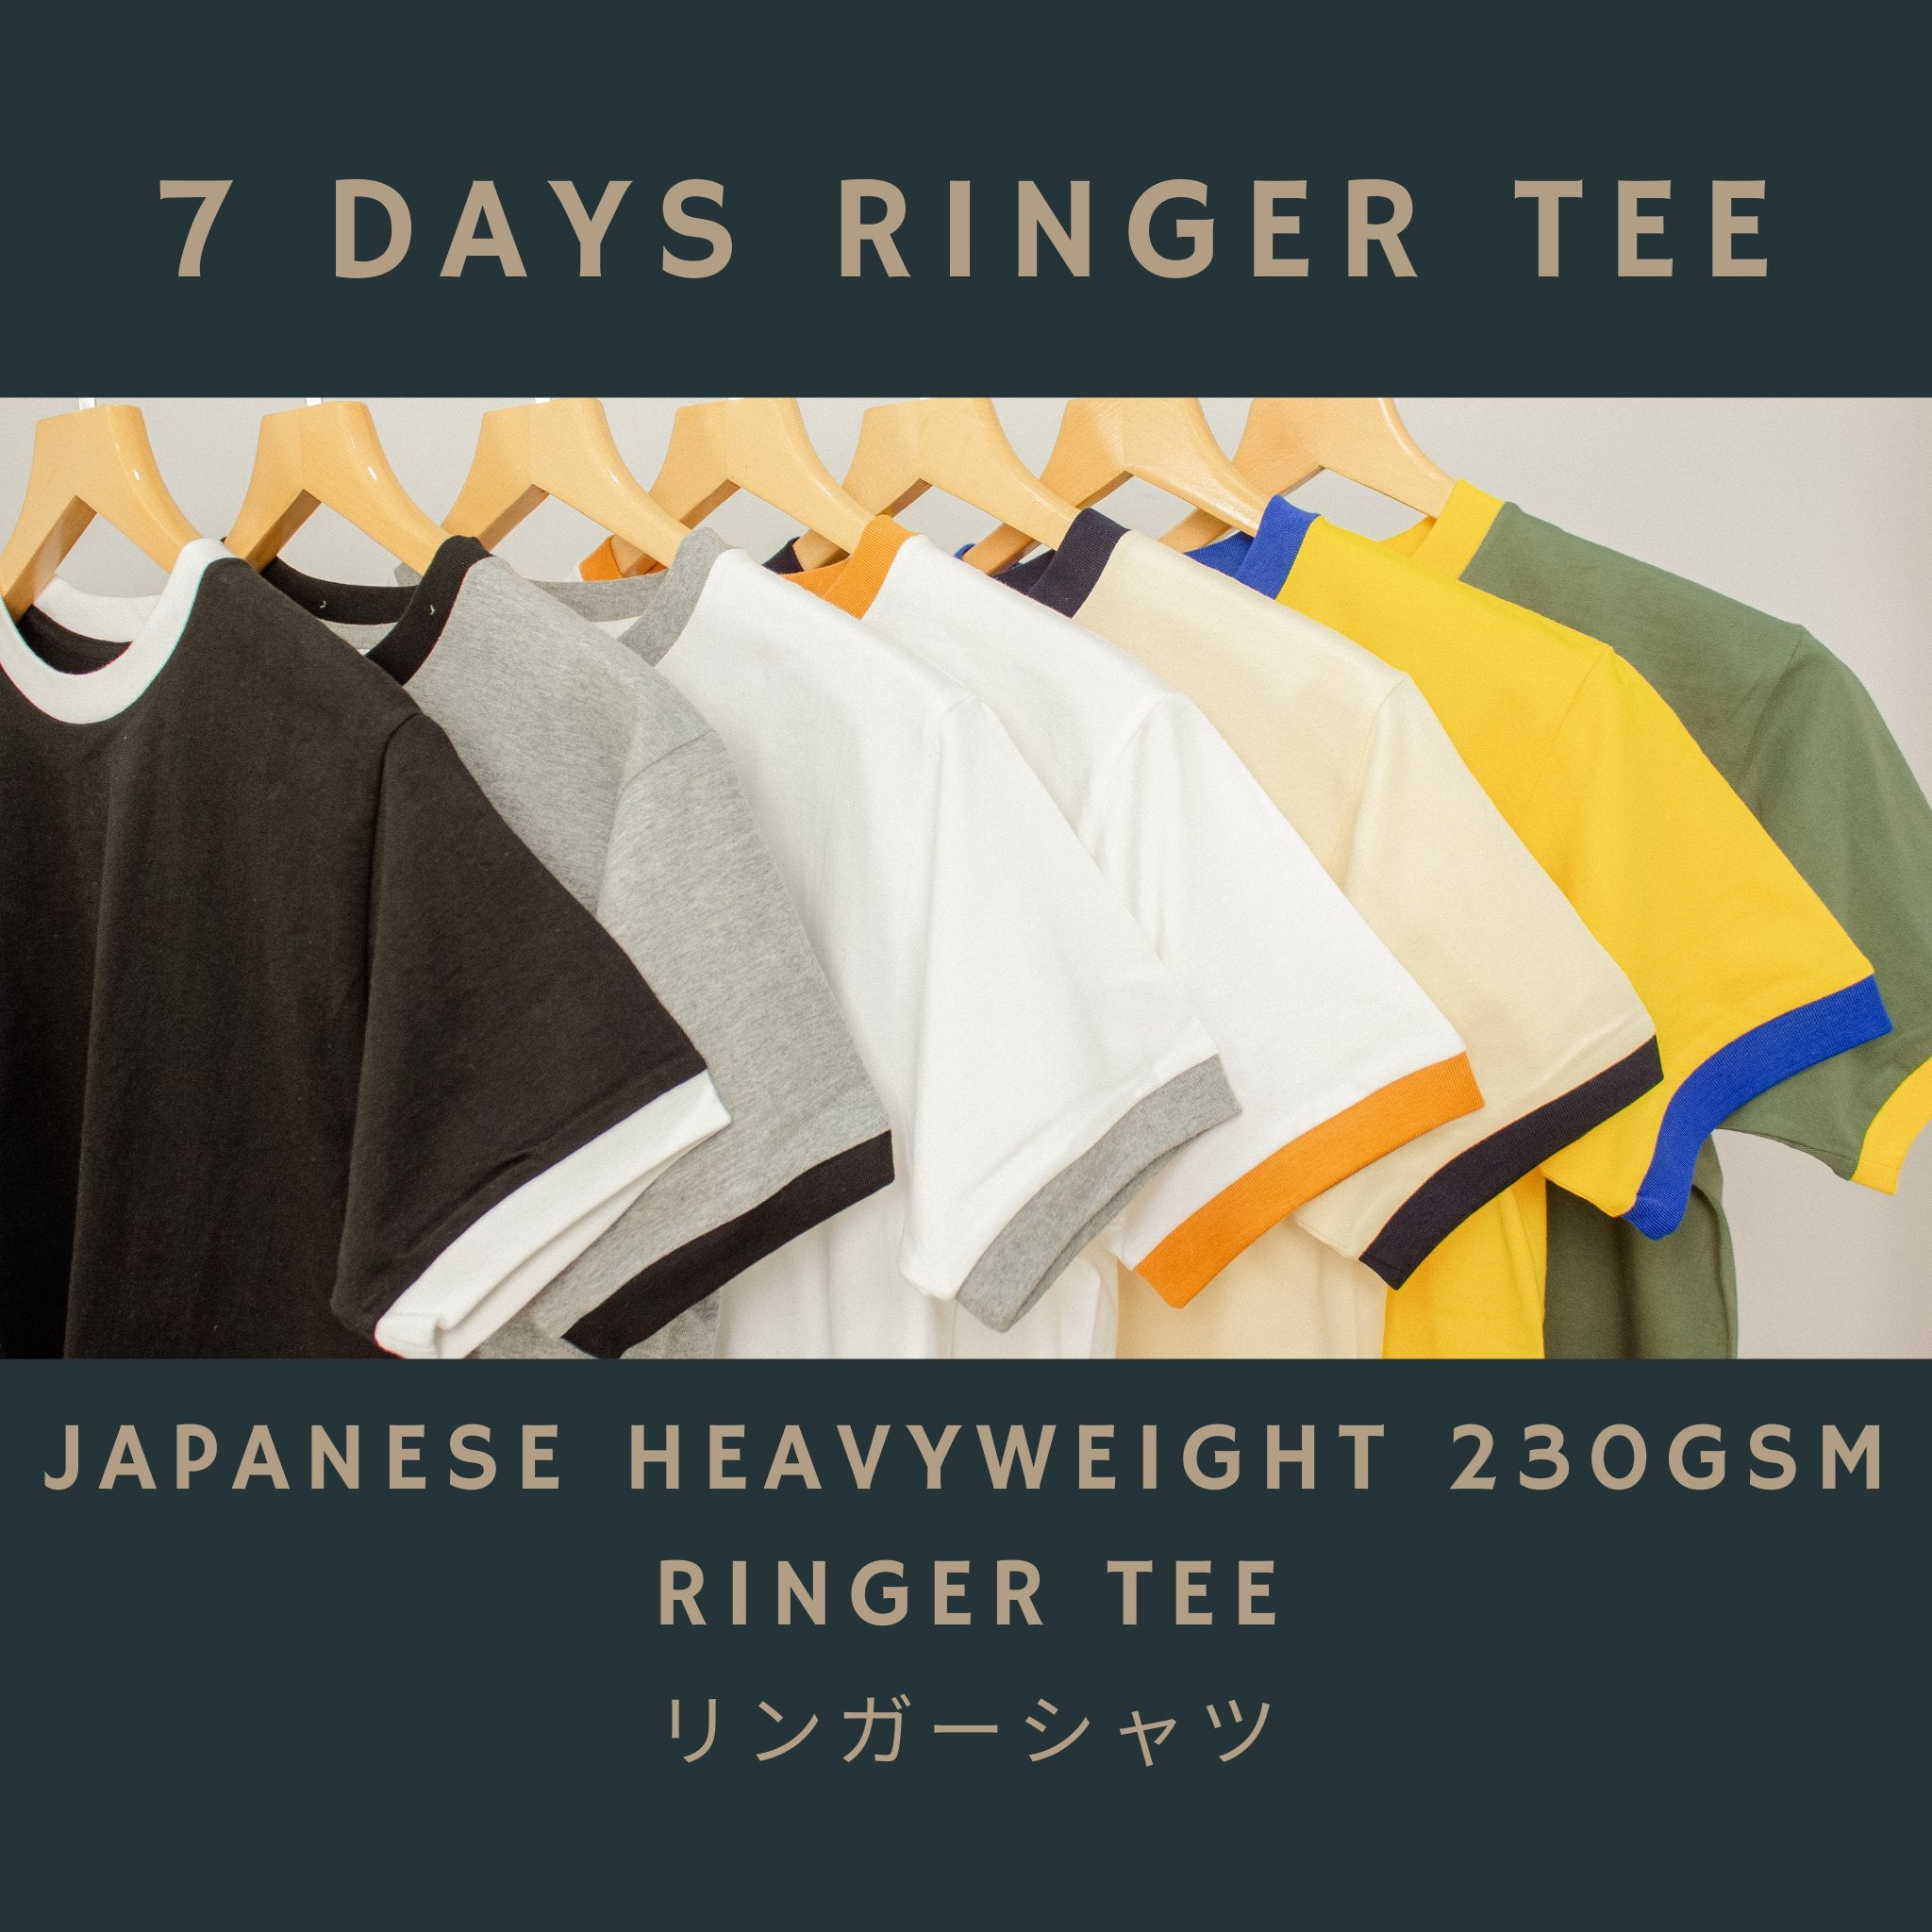 Japanese Heavyweight 230gsm Ringer Tee